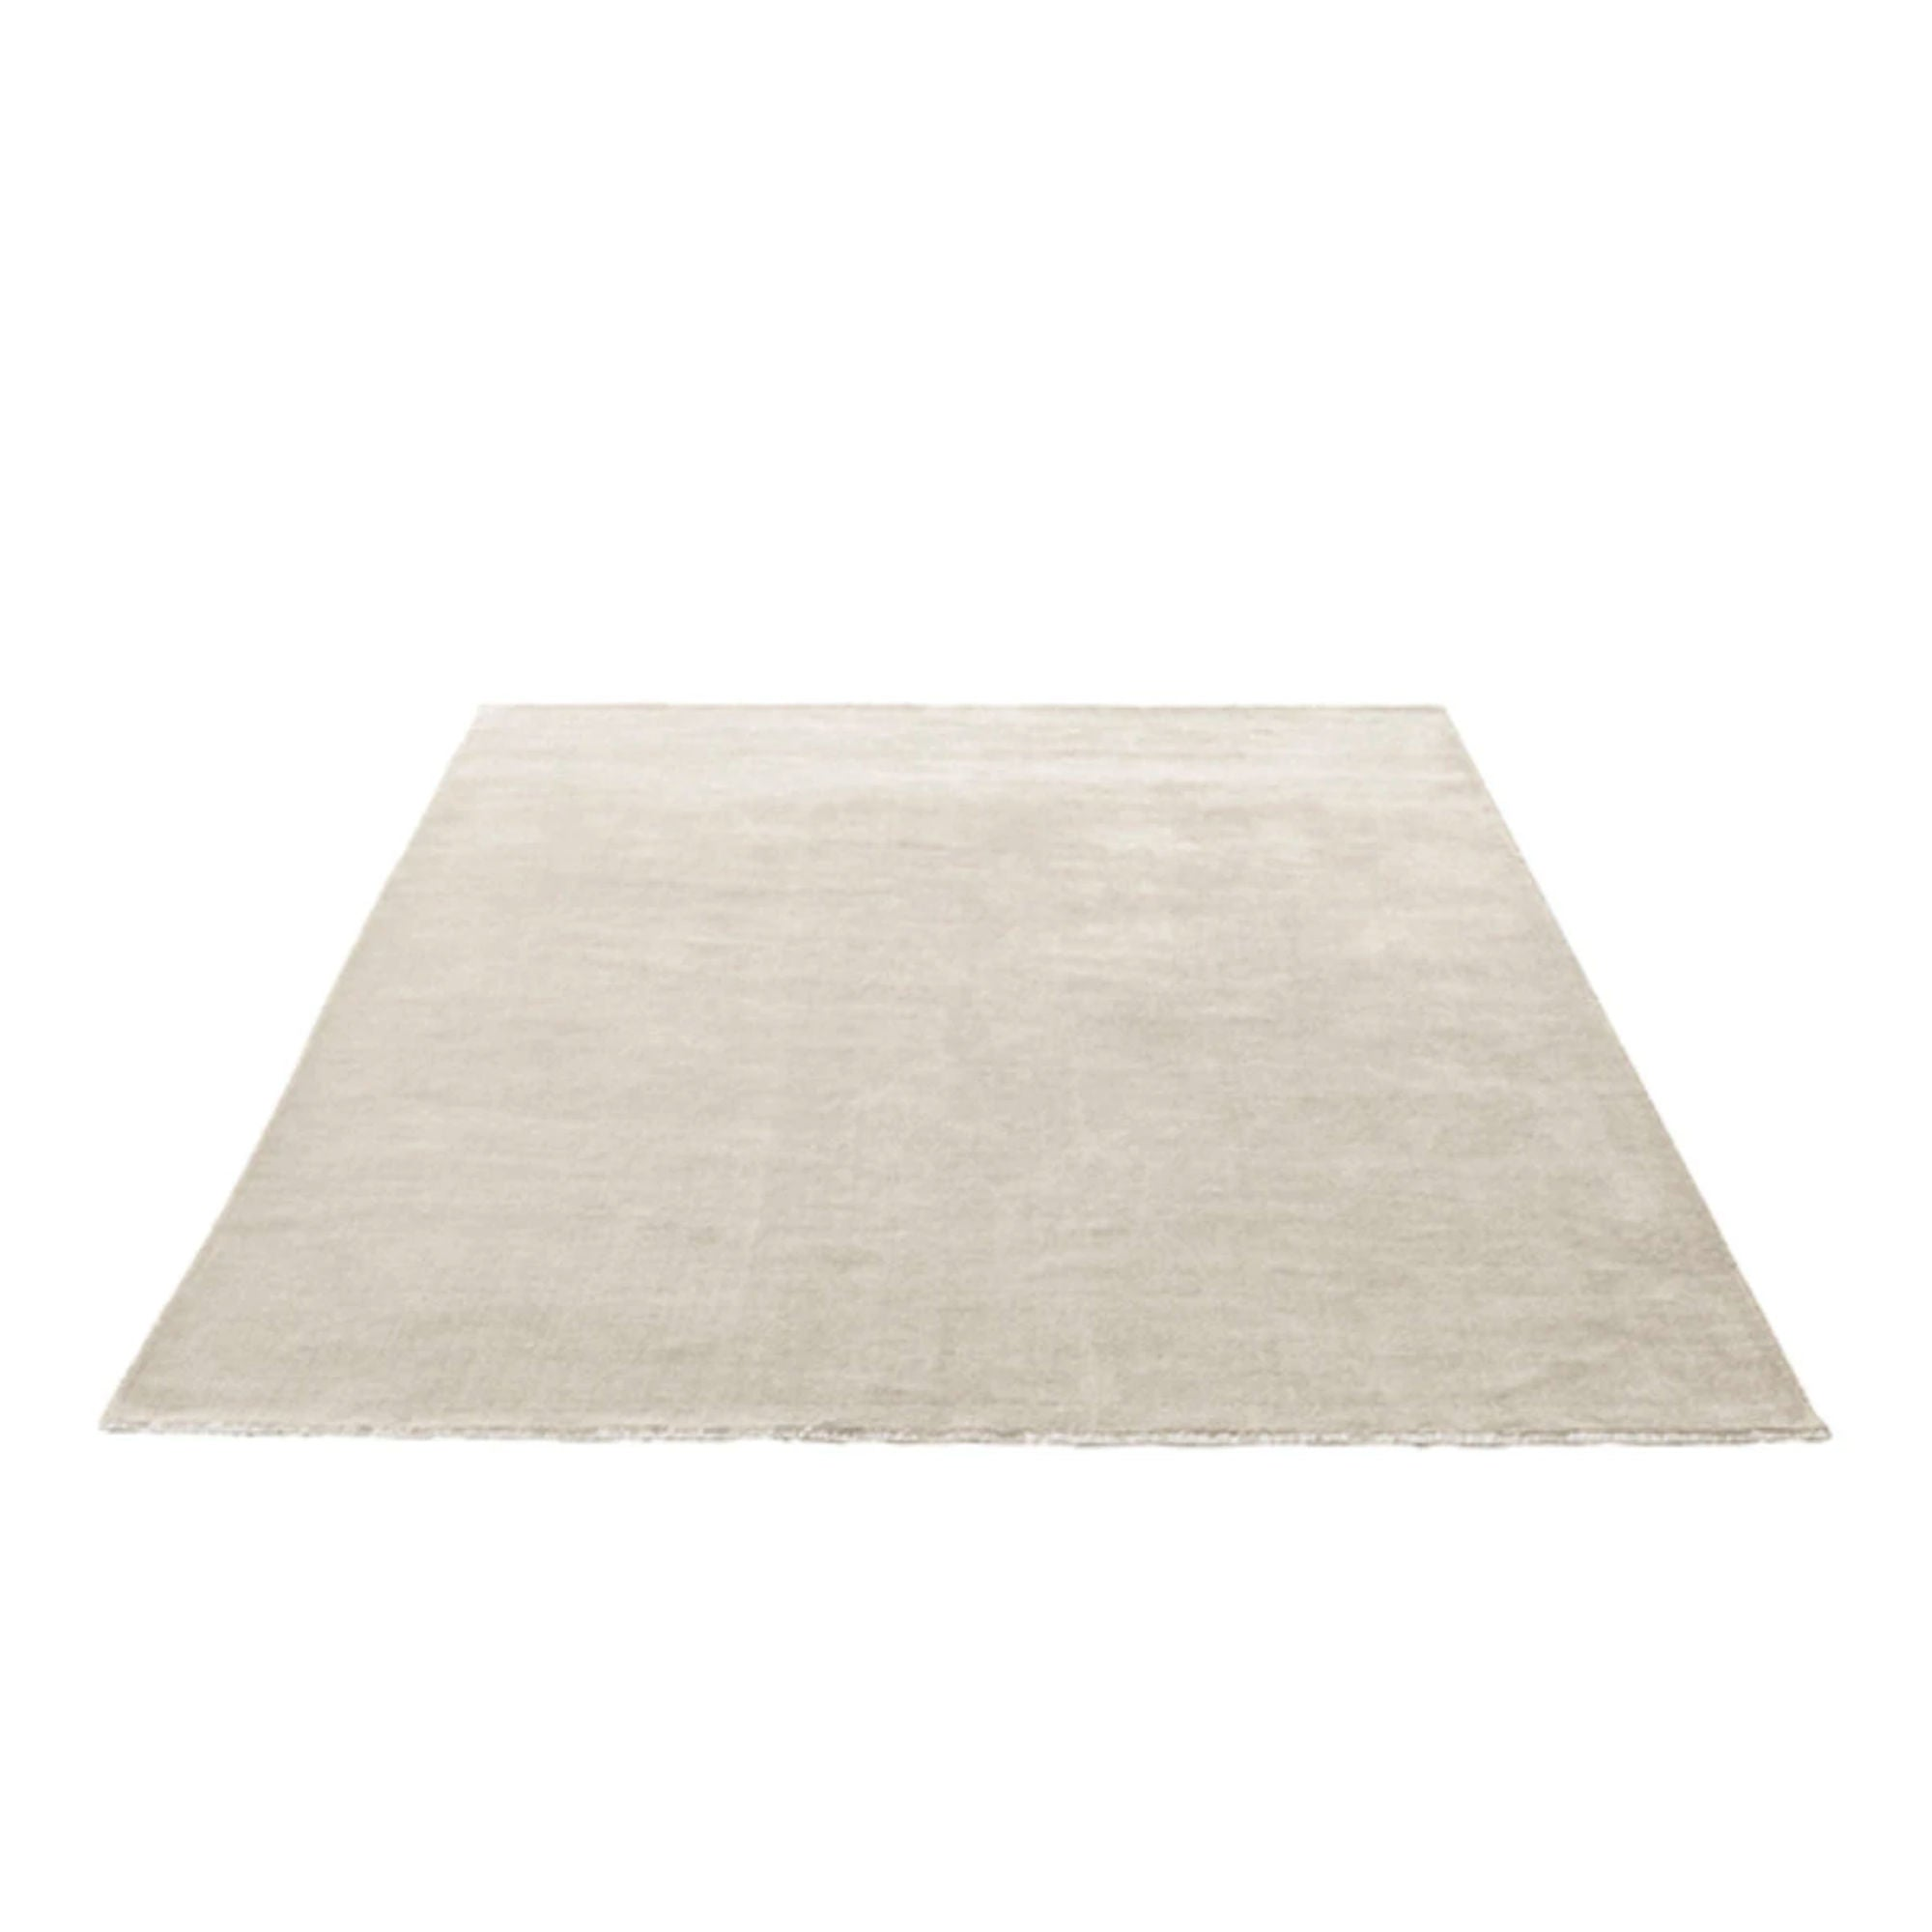 &Tradition The Moor rug AP7 , Beige Dew (200x300 cm)